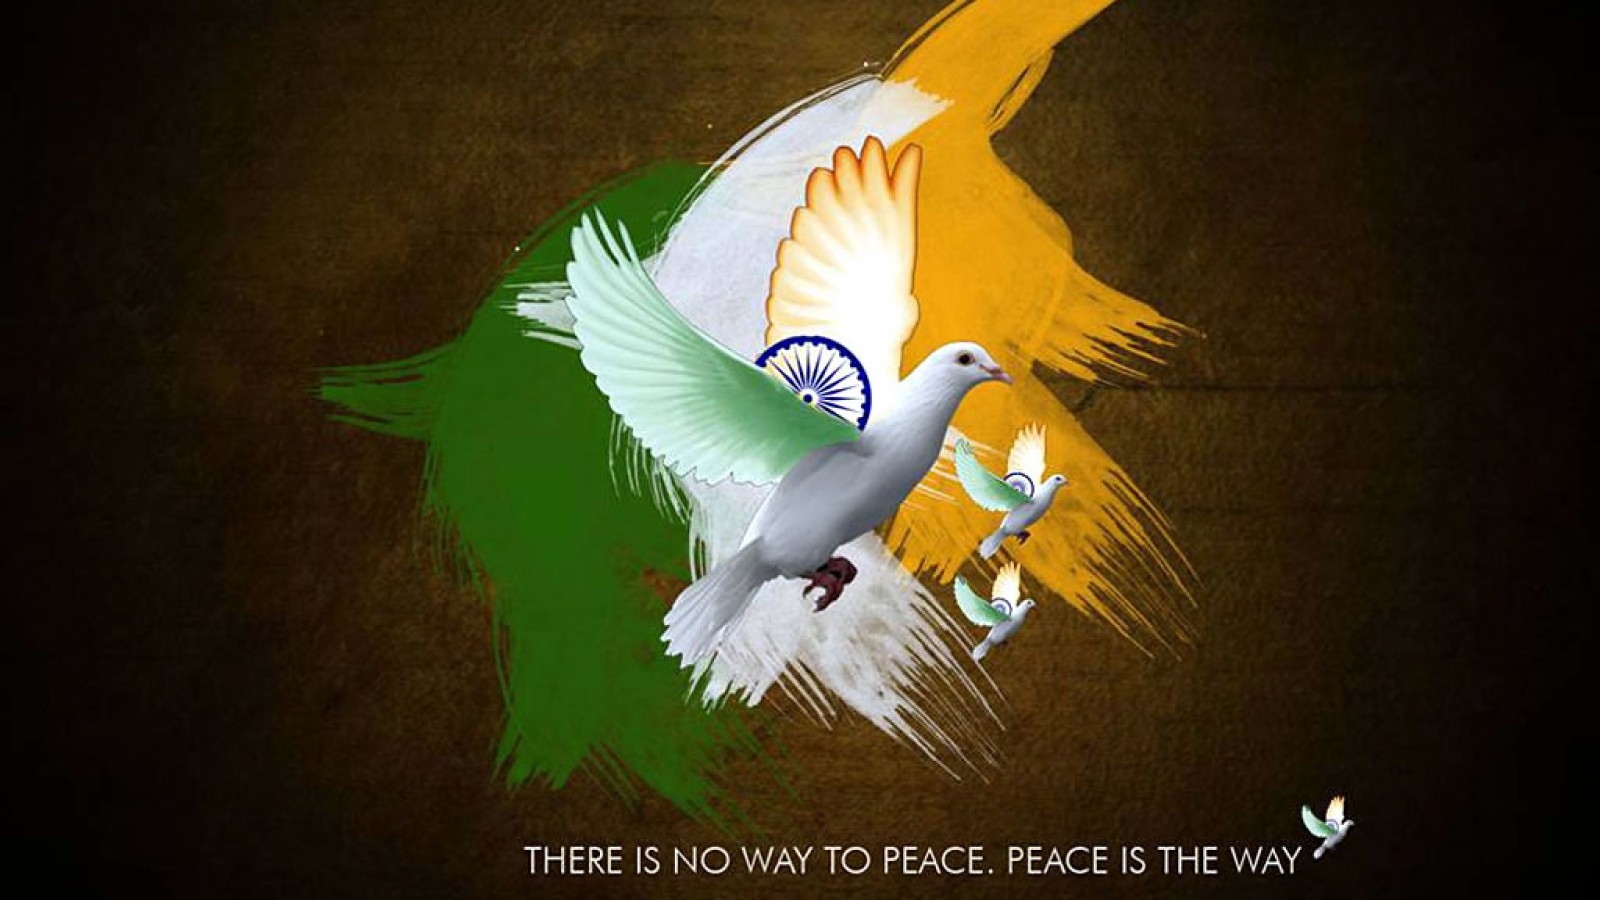 there-is-no-way-to-peace-peace-is-the-way-happy-republic-day